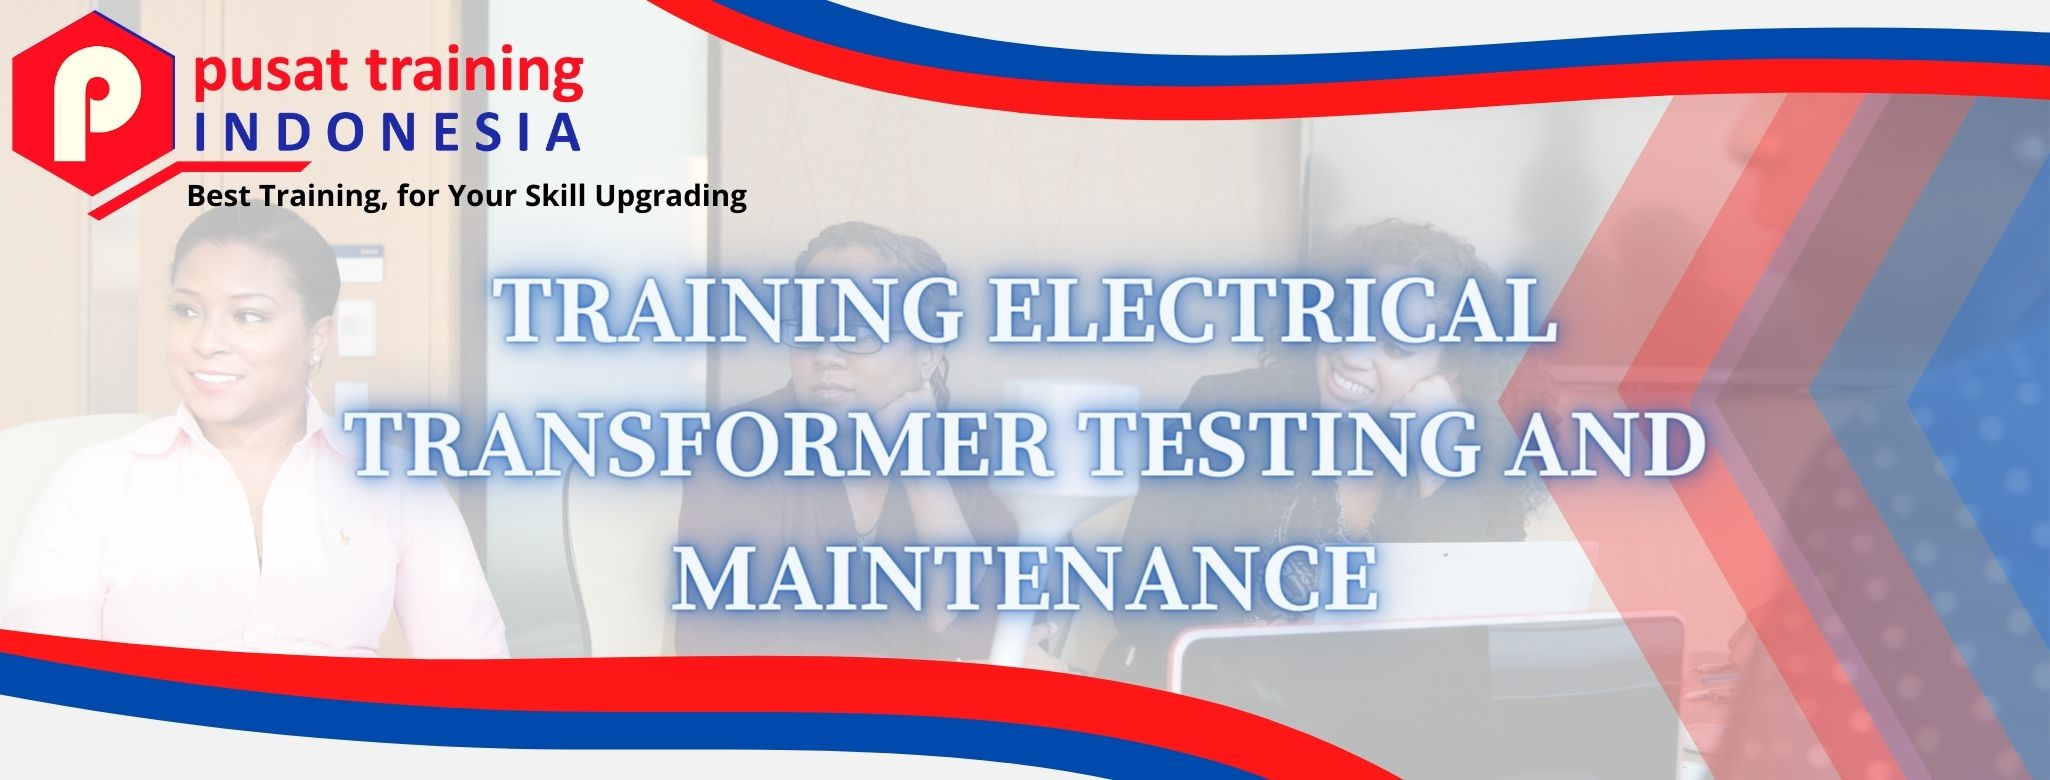 TRAINING ELECTRICAL TRANSFORMER TESTING AND MAINTENANCE